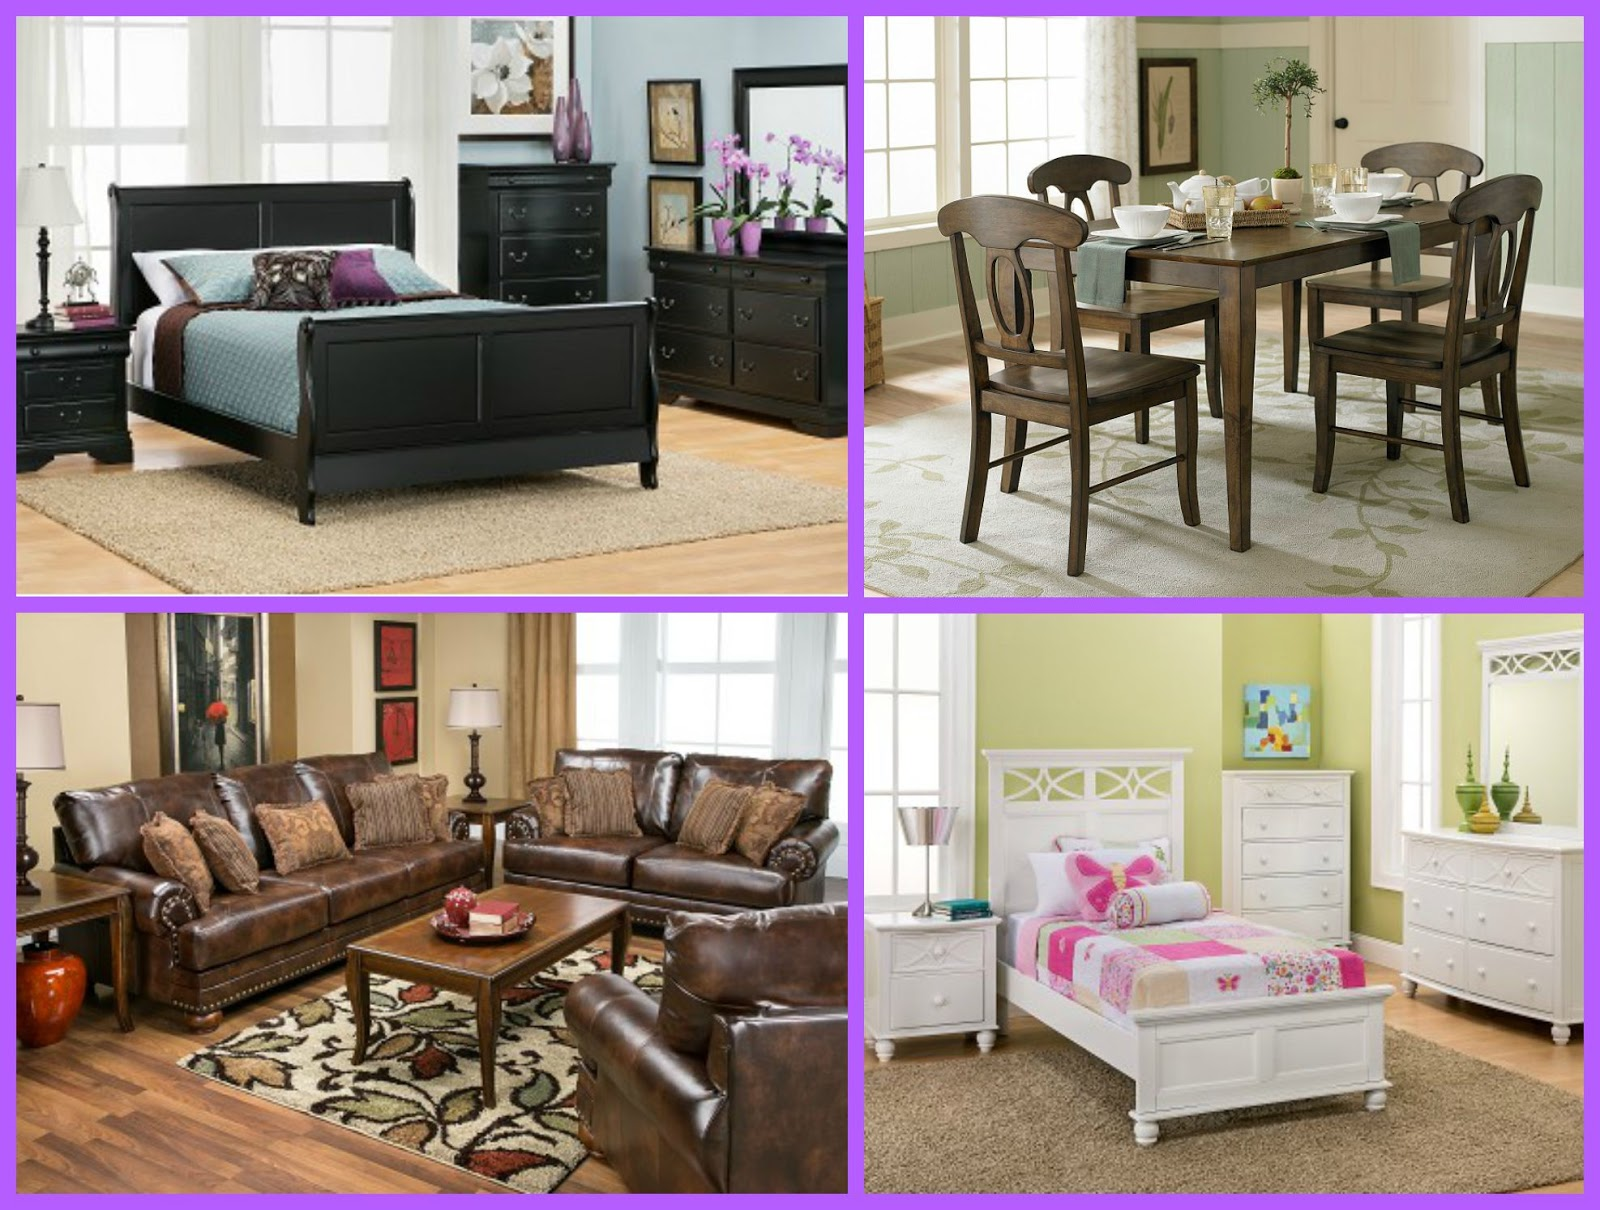 Slumberland Furniture | We take pride in providing your family with furniture that will create a home filled with love and comfort.